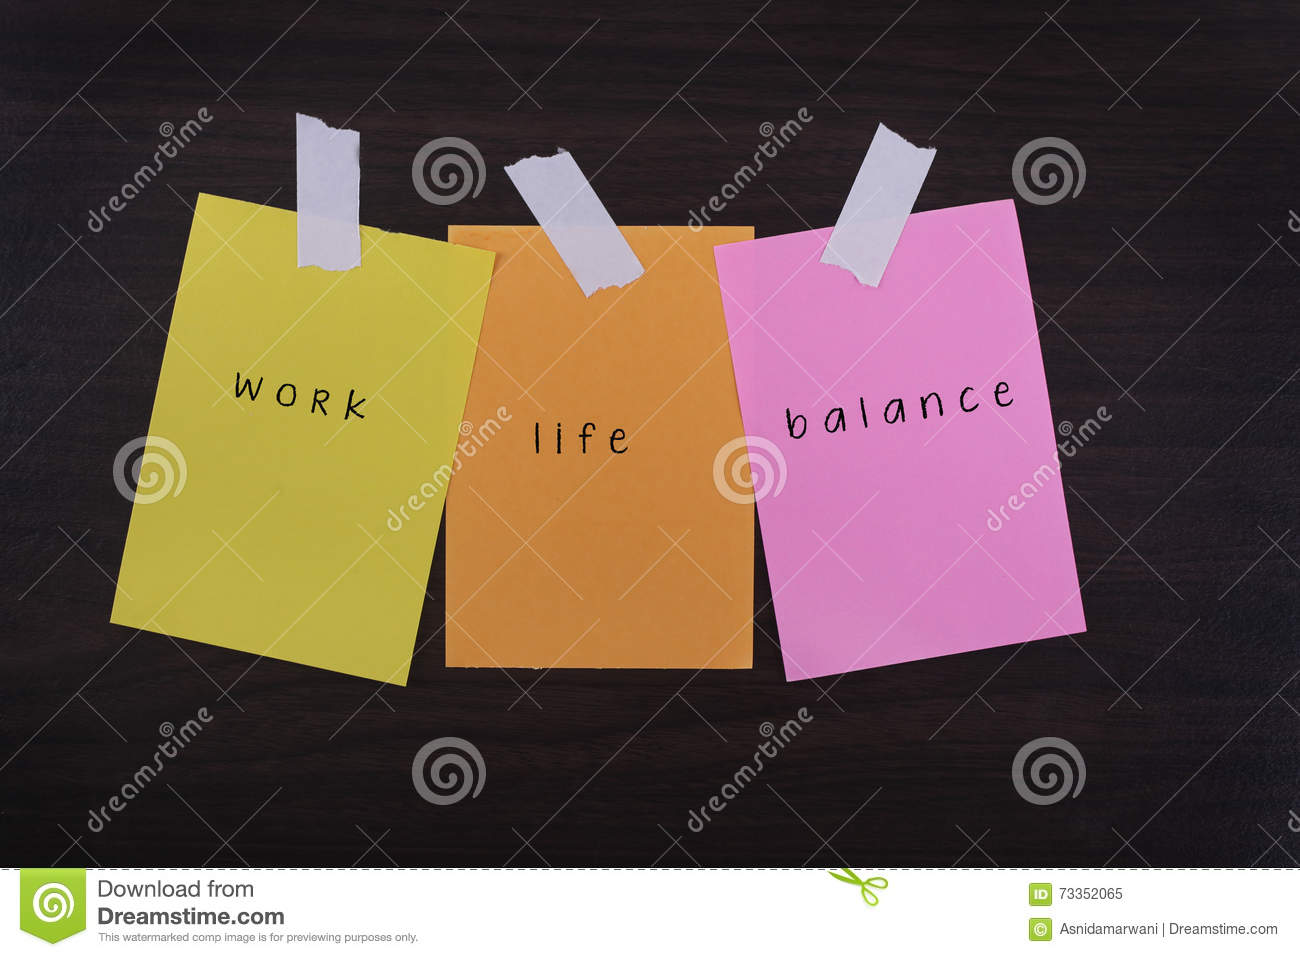 Work Life Balance Quotes Word Quotes Of Work Life Balance On Colorful Sticky Papers Against